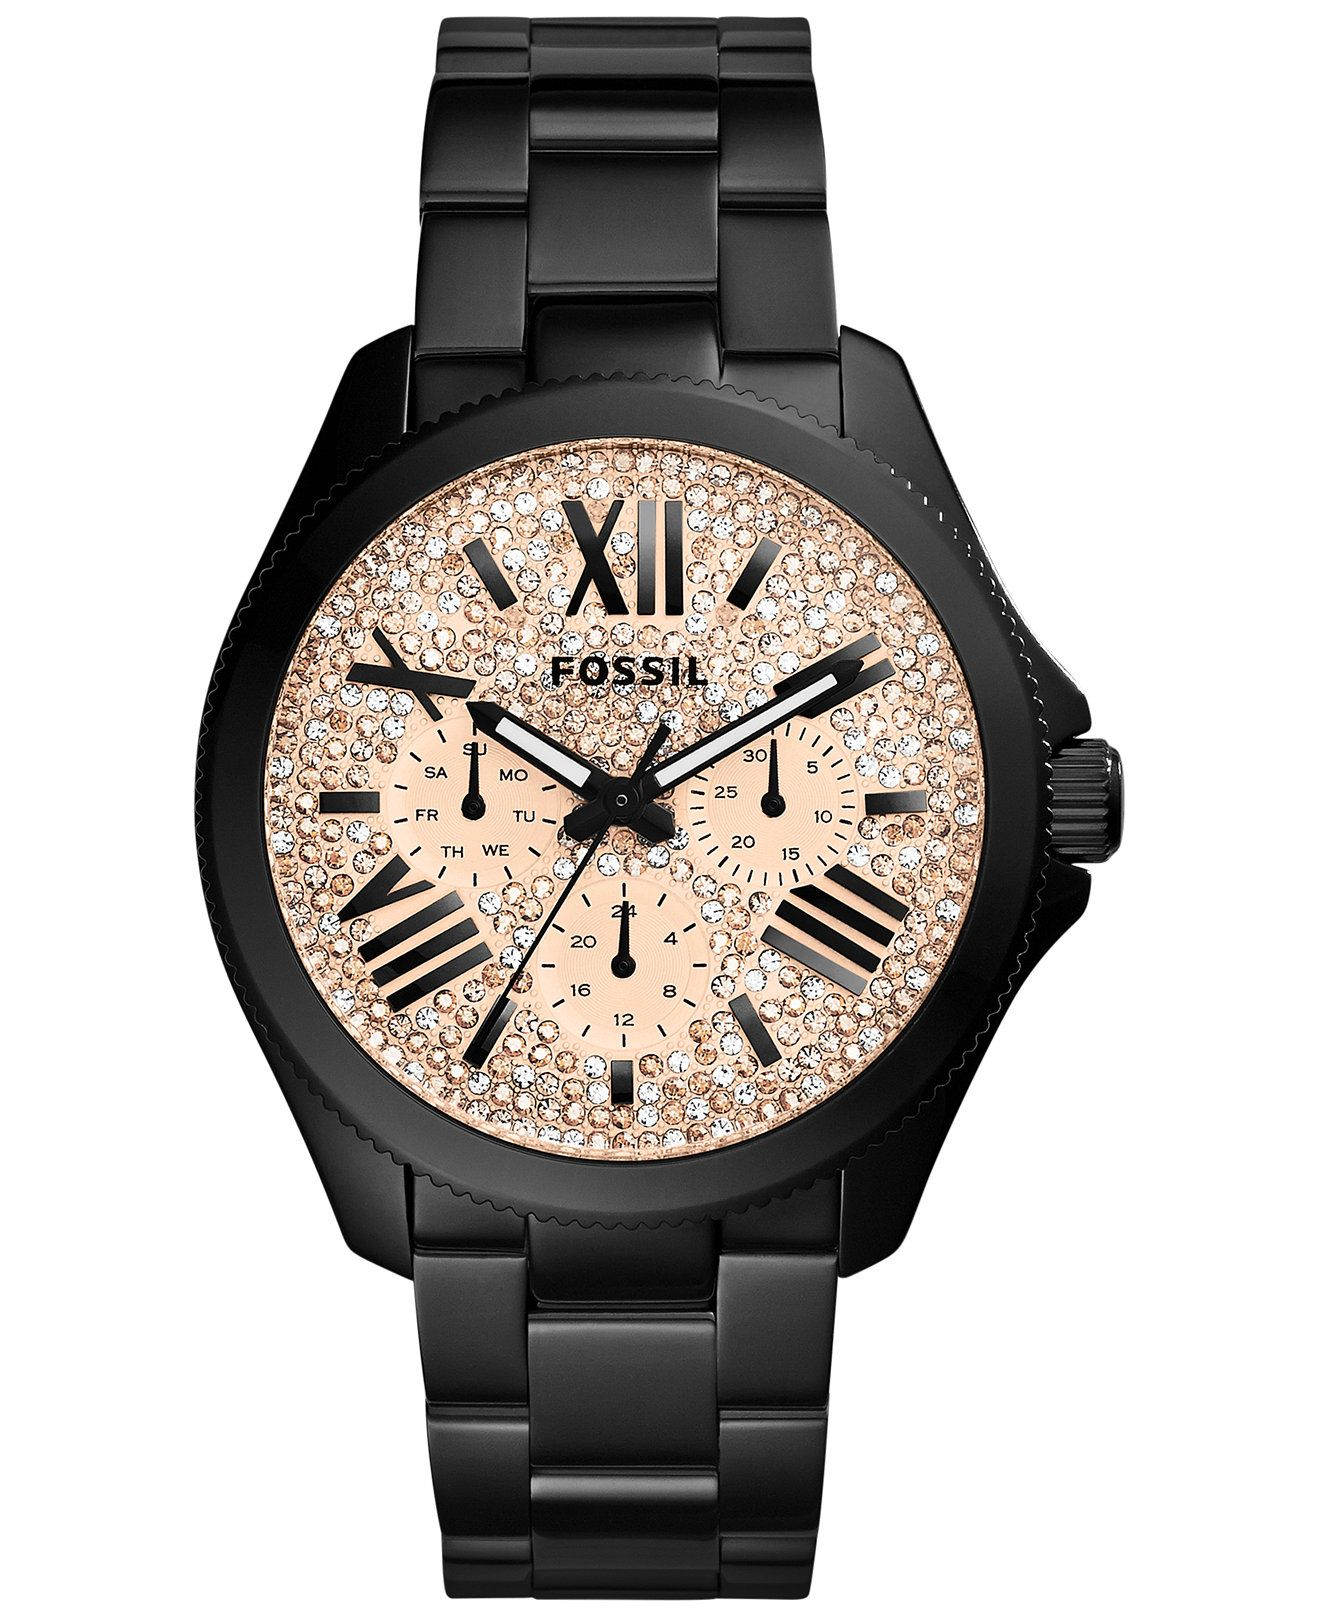 e31568e5a0c7 Fossil Women s Cecile Black Ion-Plated Stainless Steel Bracelet Watch 40mm  AM4593 - Watches - Jewelry   Watches - Macy s